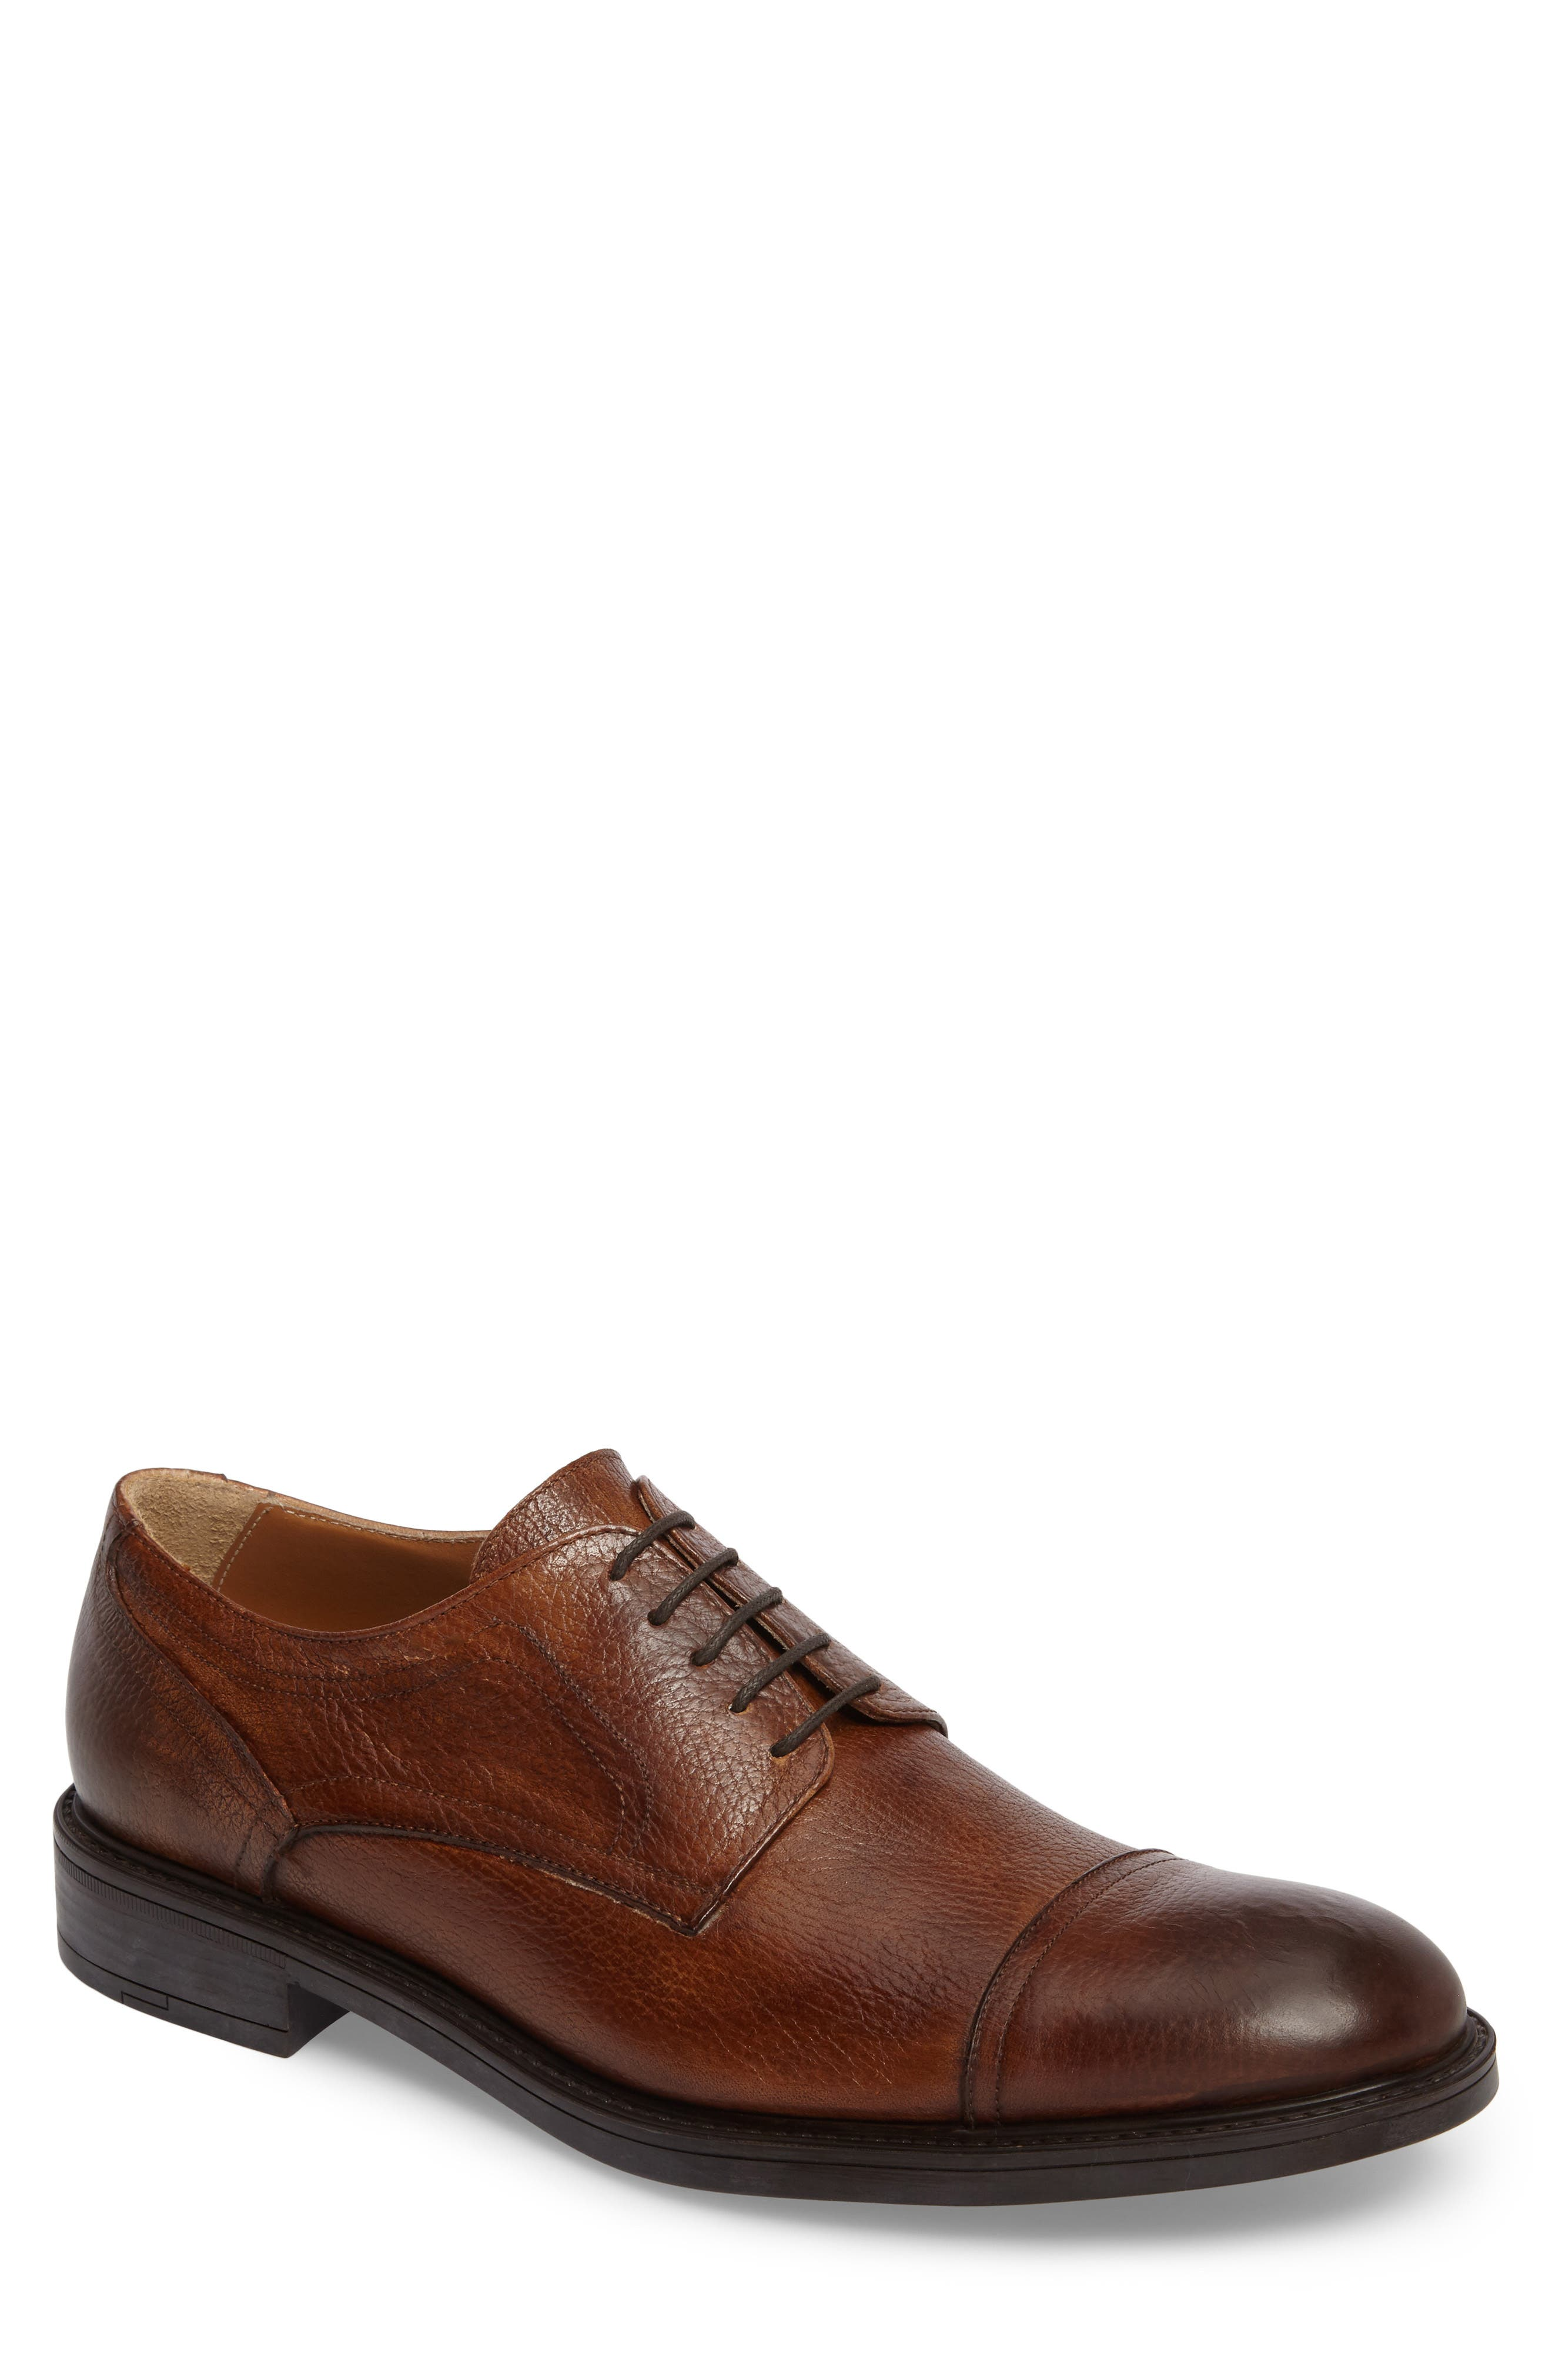 Main Image - Kenneth Cole New York Cap Toe Derby (Men)